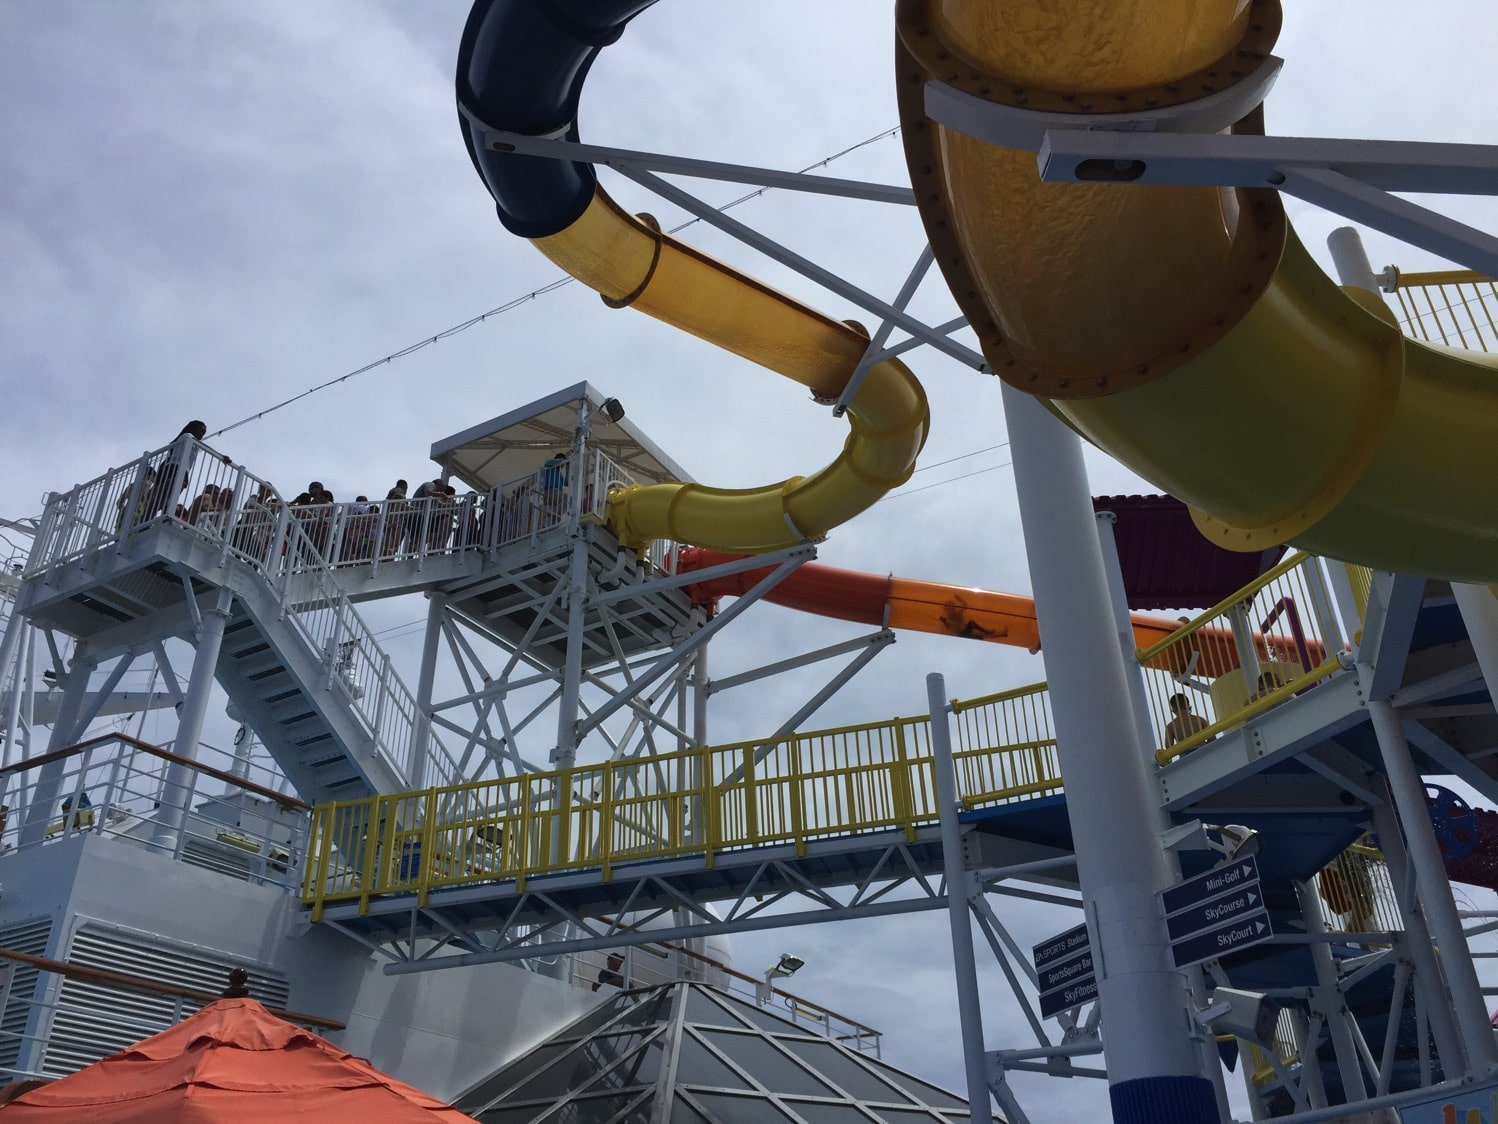 Family Cruise | Water Works